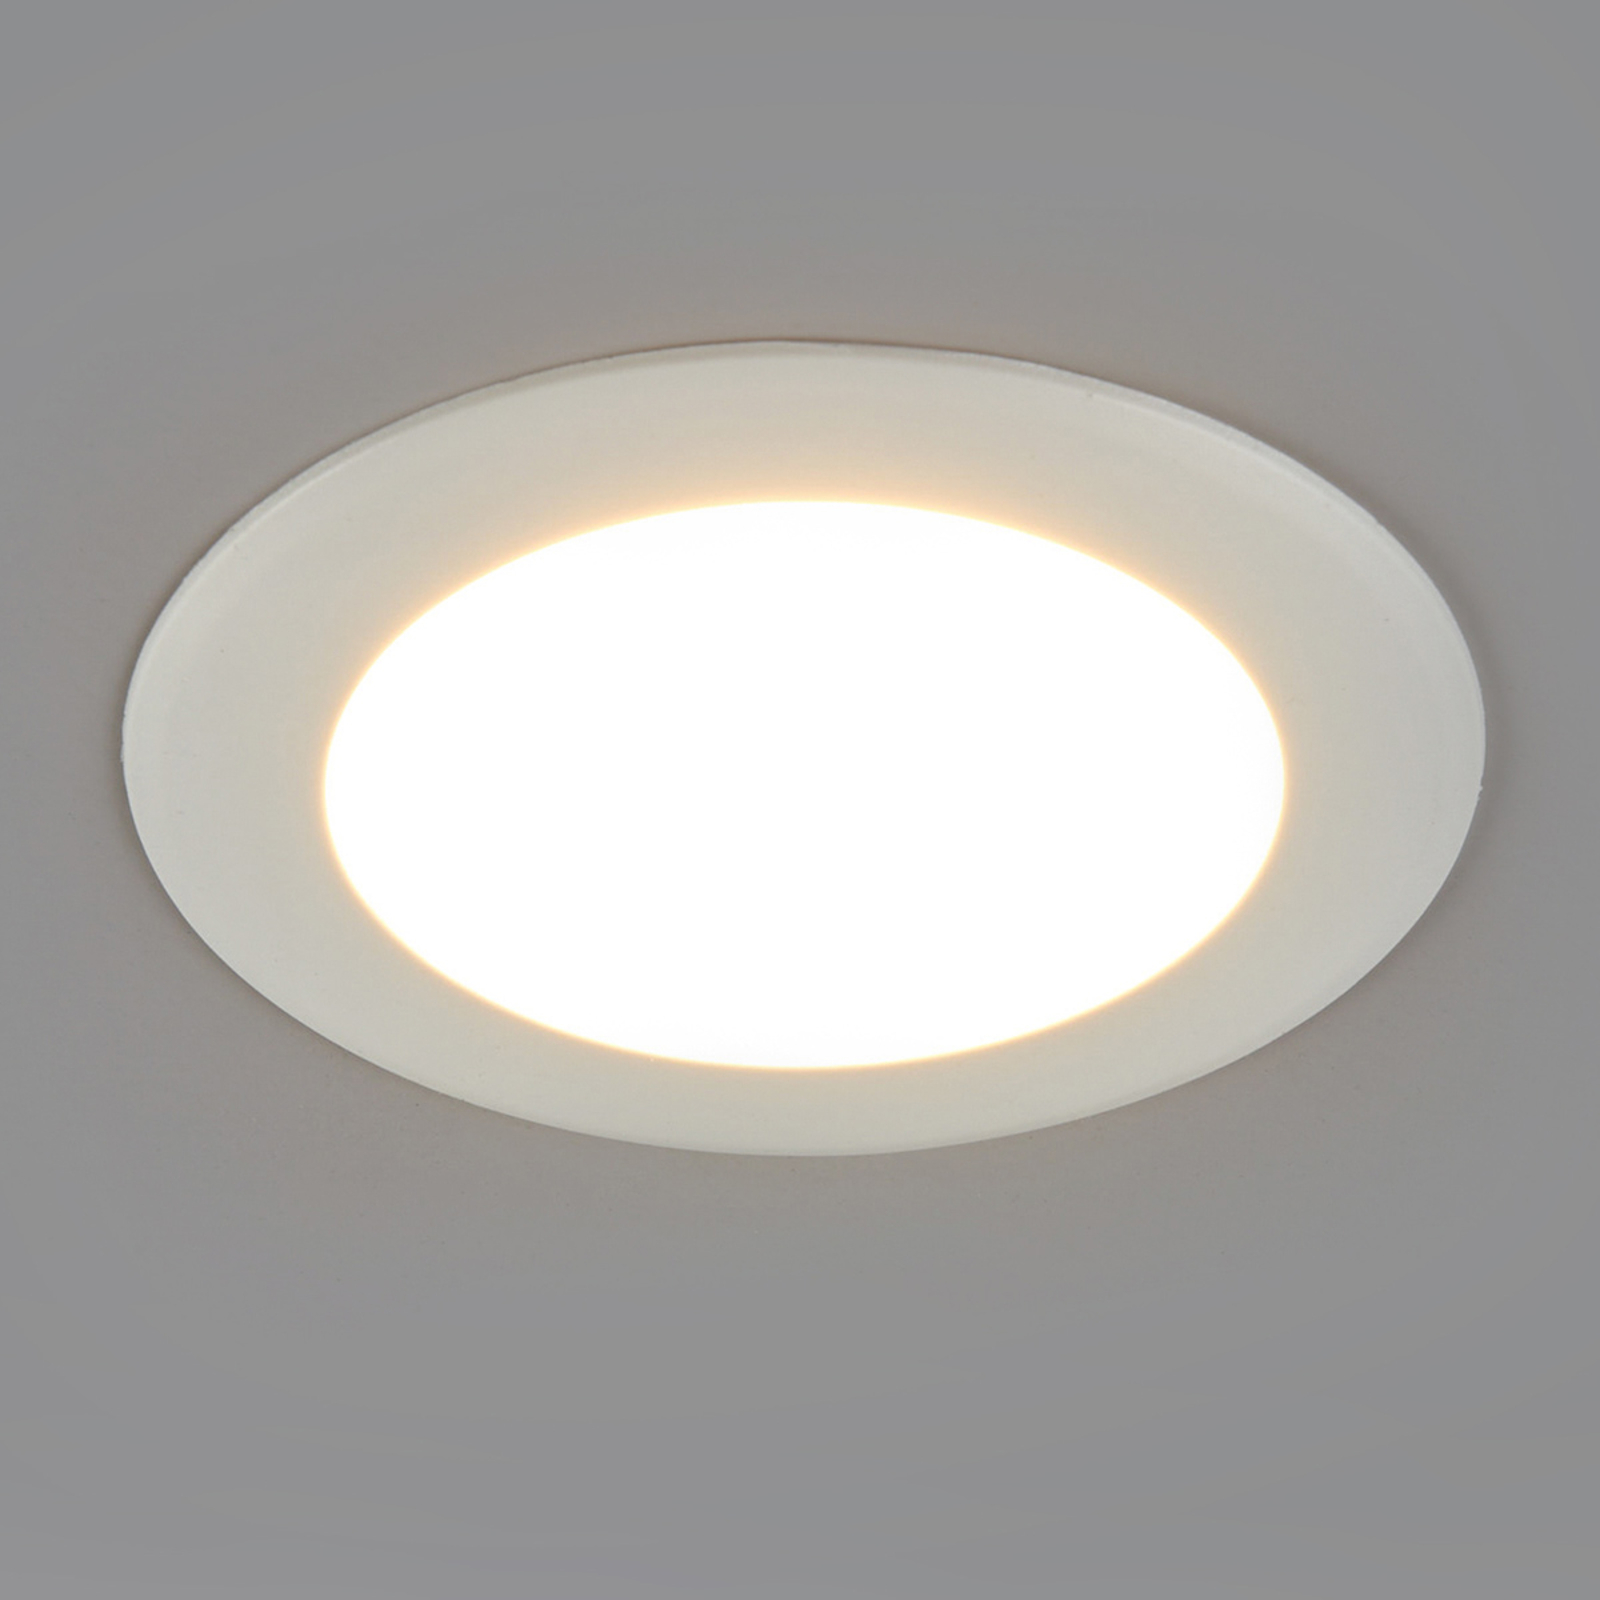 Round LED recessed light Arian, 9.2 cm, 6 W_9978008_1